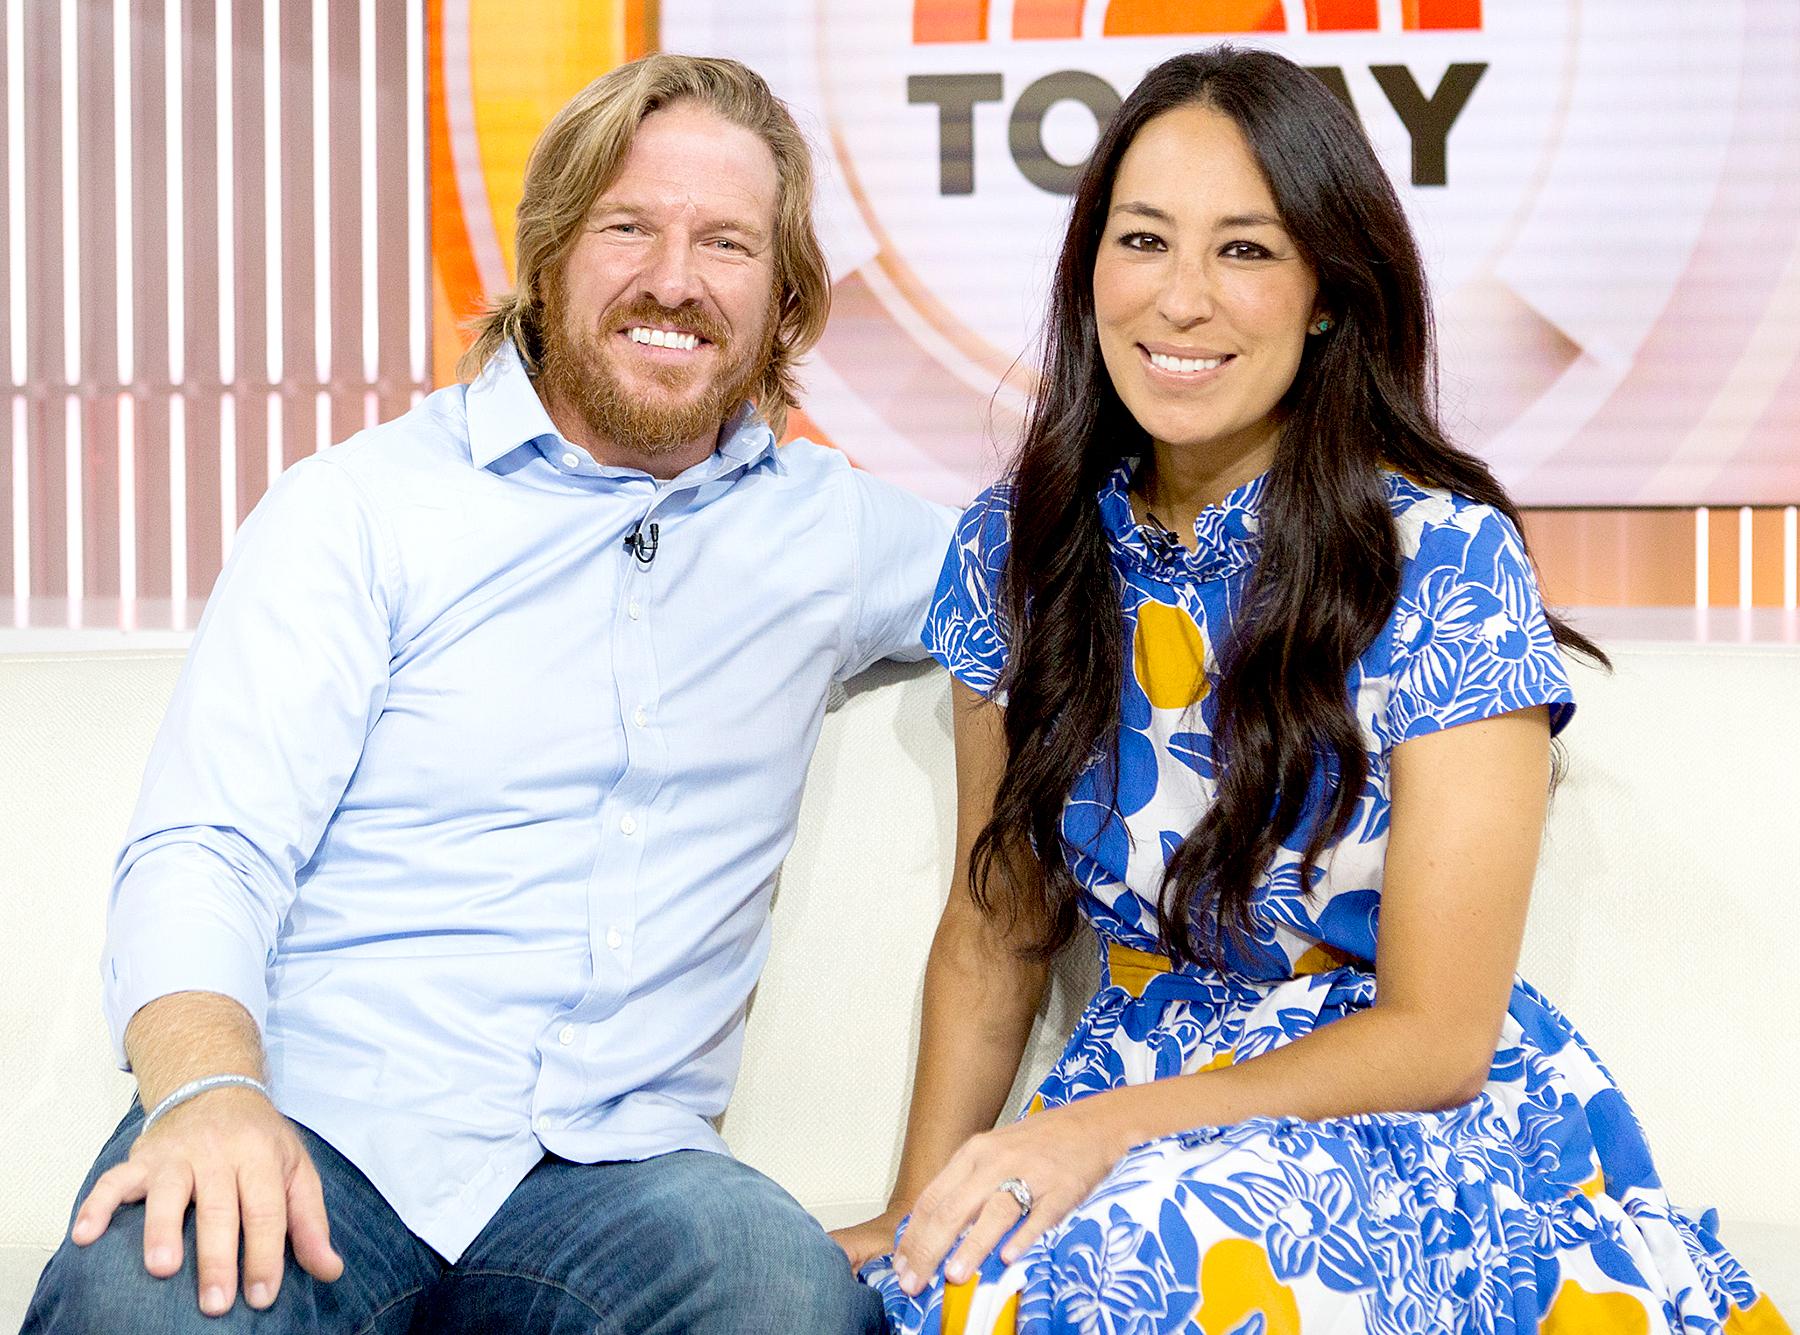 Before Meeting Joanna, Chip Gaines Says He Was Hell-Bent on Making Another Woman His Wife